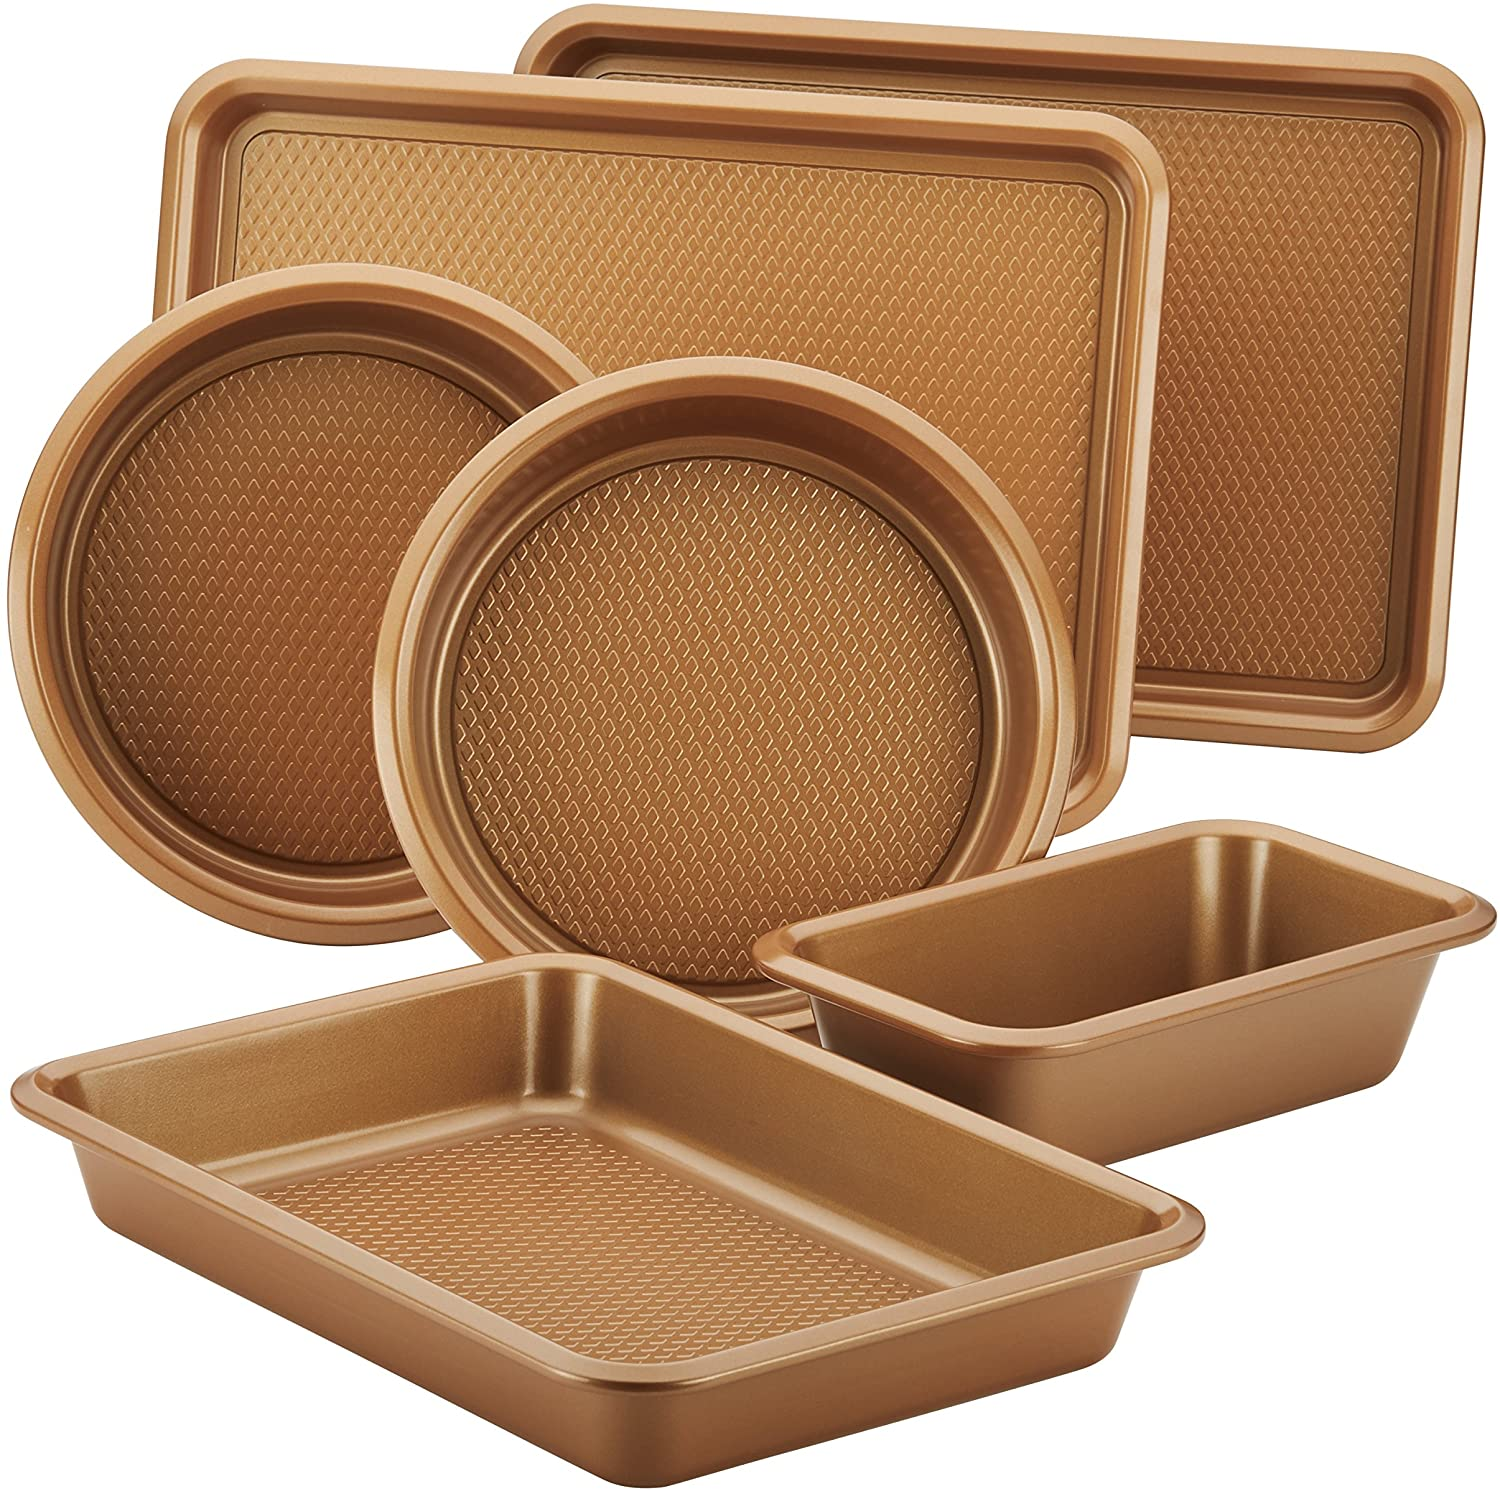 """An extended edge for easy handling is just the start for this six-piece pan and sheet set, available in copper brown and silver. High-performance steel construction pairs with a diamond textured surface for a durable, nonstick bake that delivers a quality recipe every time. Oven-safe up to 450 degrees Fahrenheit and dishwasher-safe for an easy clean, this set has all the essential baking bases covered. As one shopperput it, """"The price is unbelievable for the quality."""